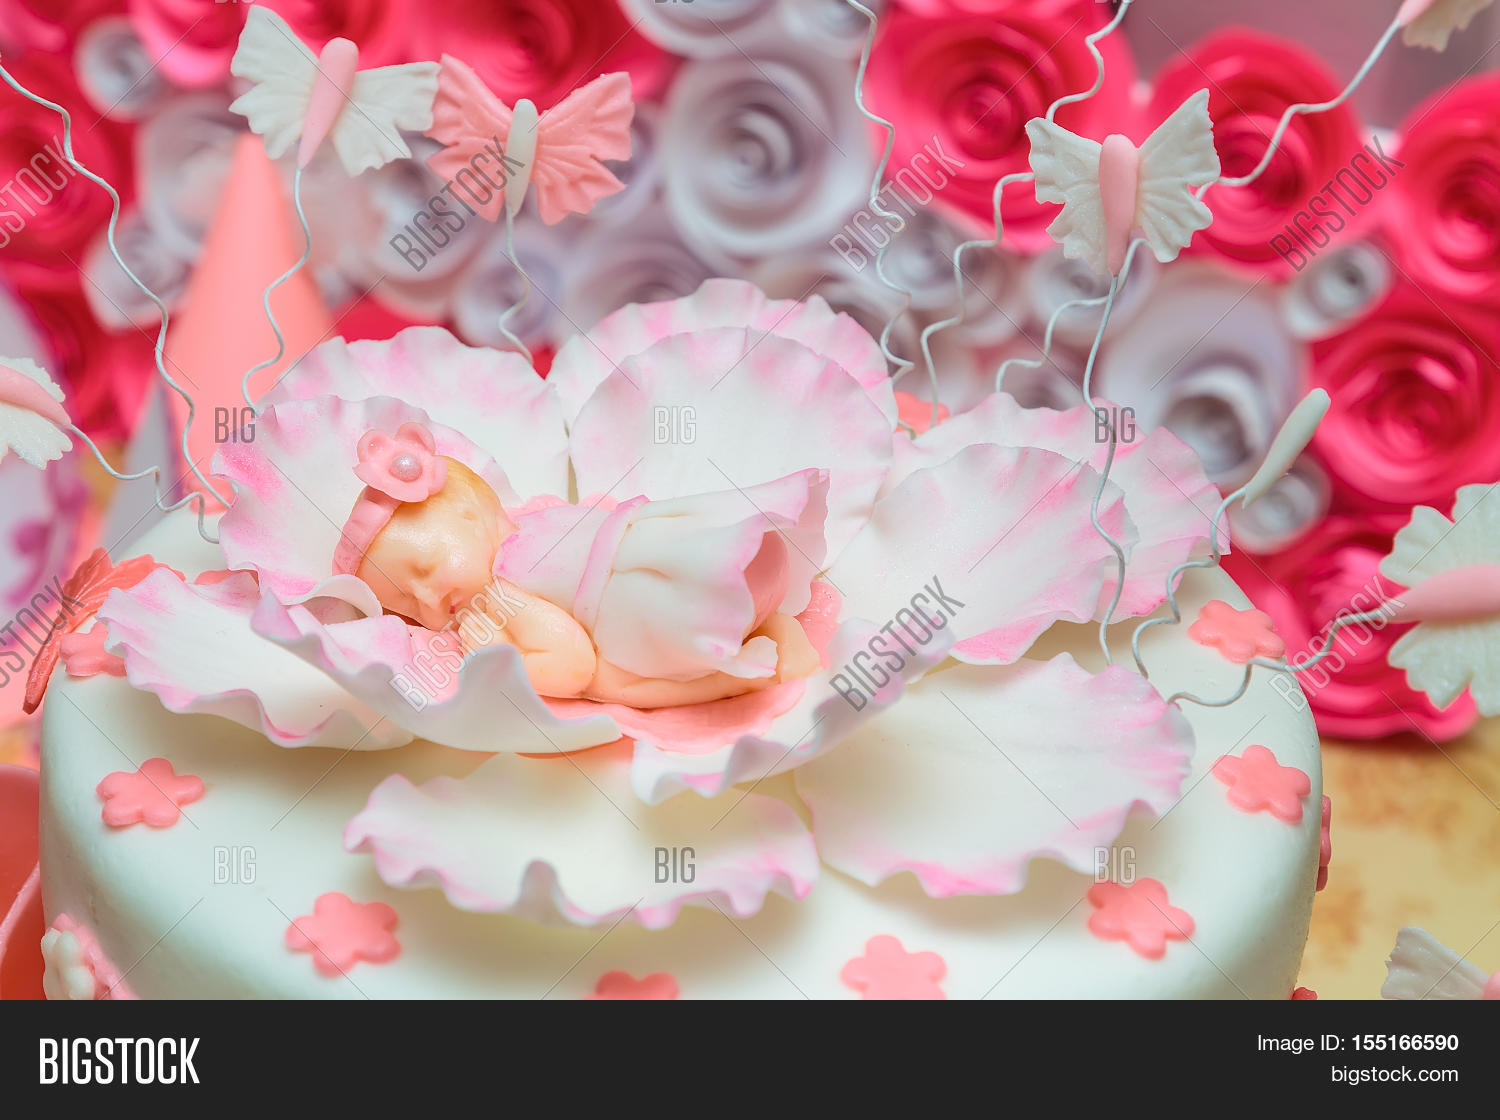 Miraculous Big Beautiful Birthday Image Photo Free Trial Bigstock Personalised Birthday Cards Epsylily Jamesorg